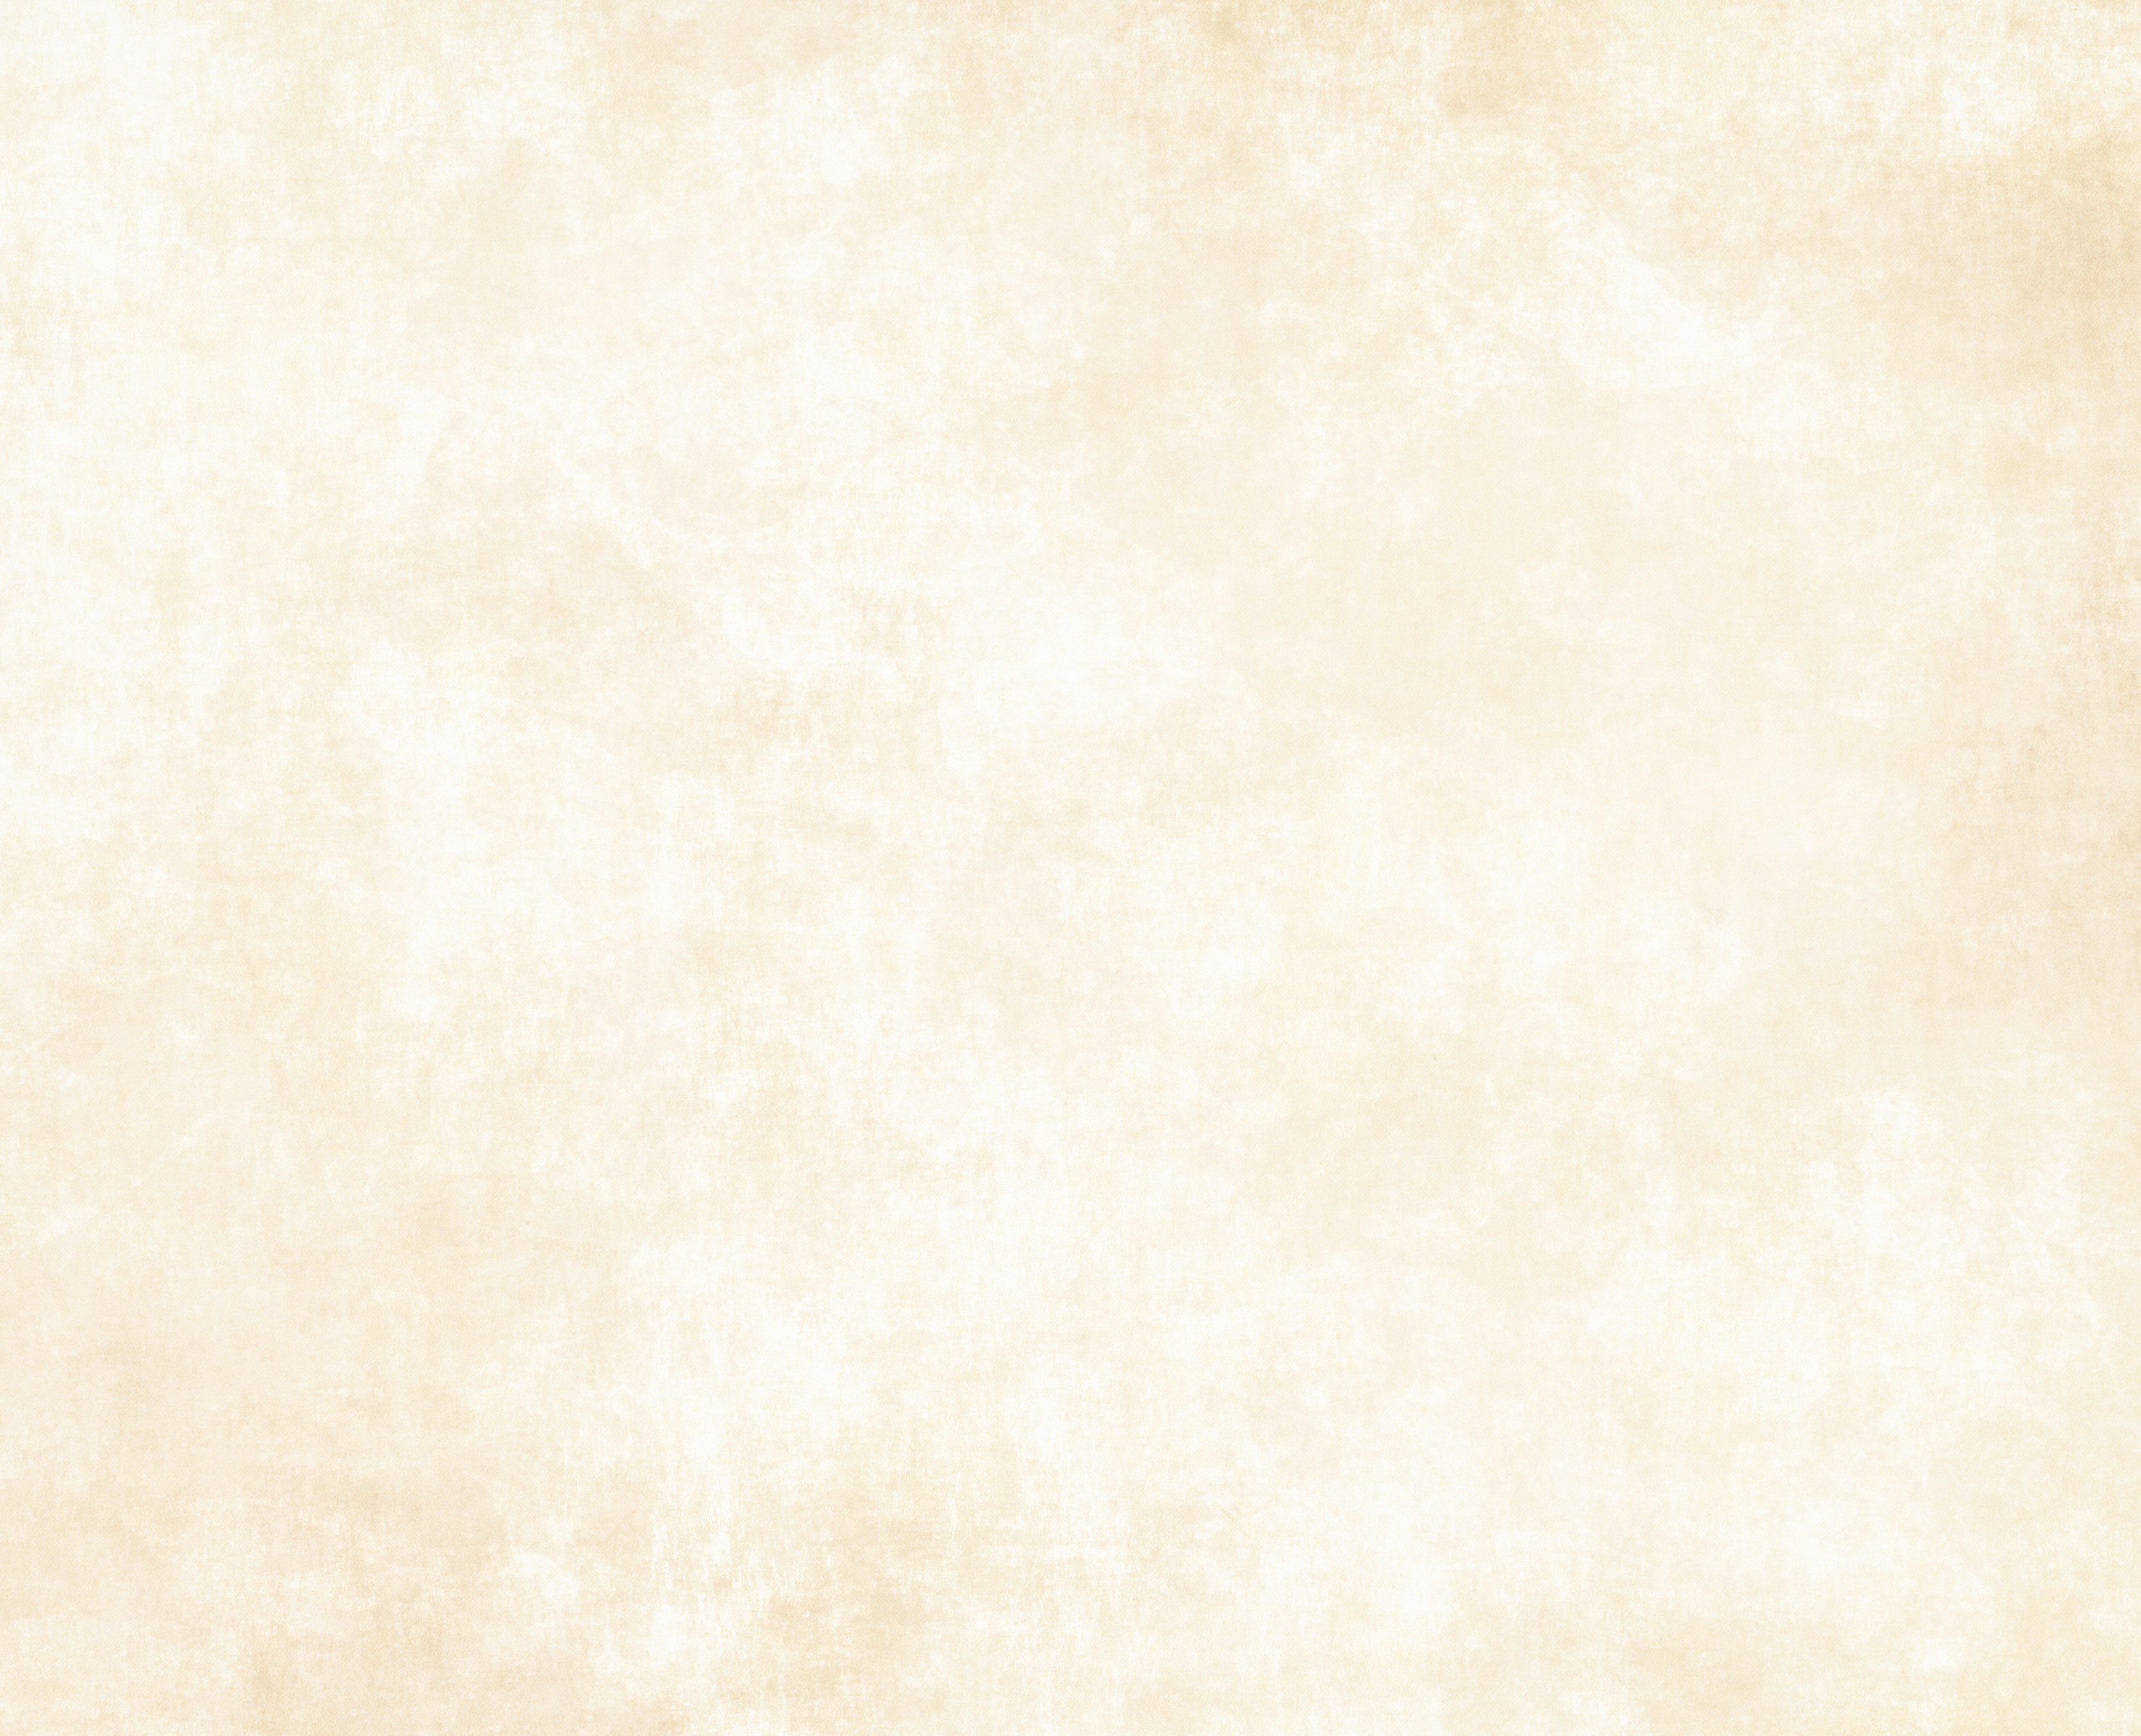 Large Old Paper Or Parchment Background Texture The